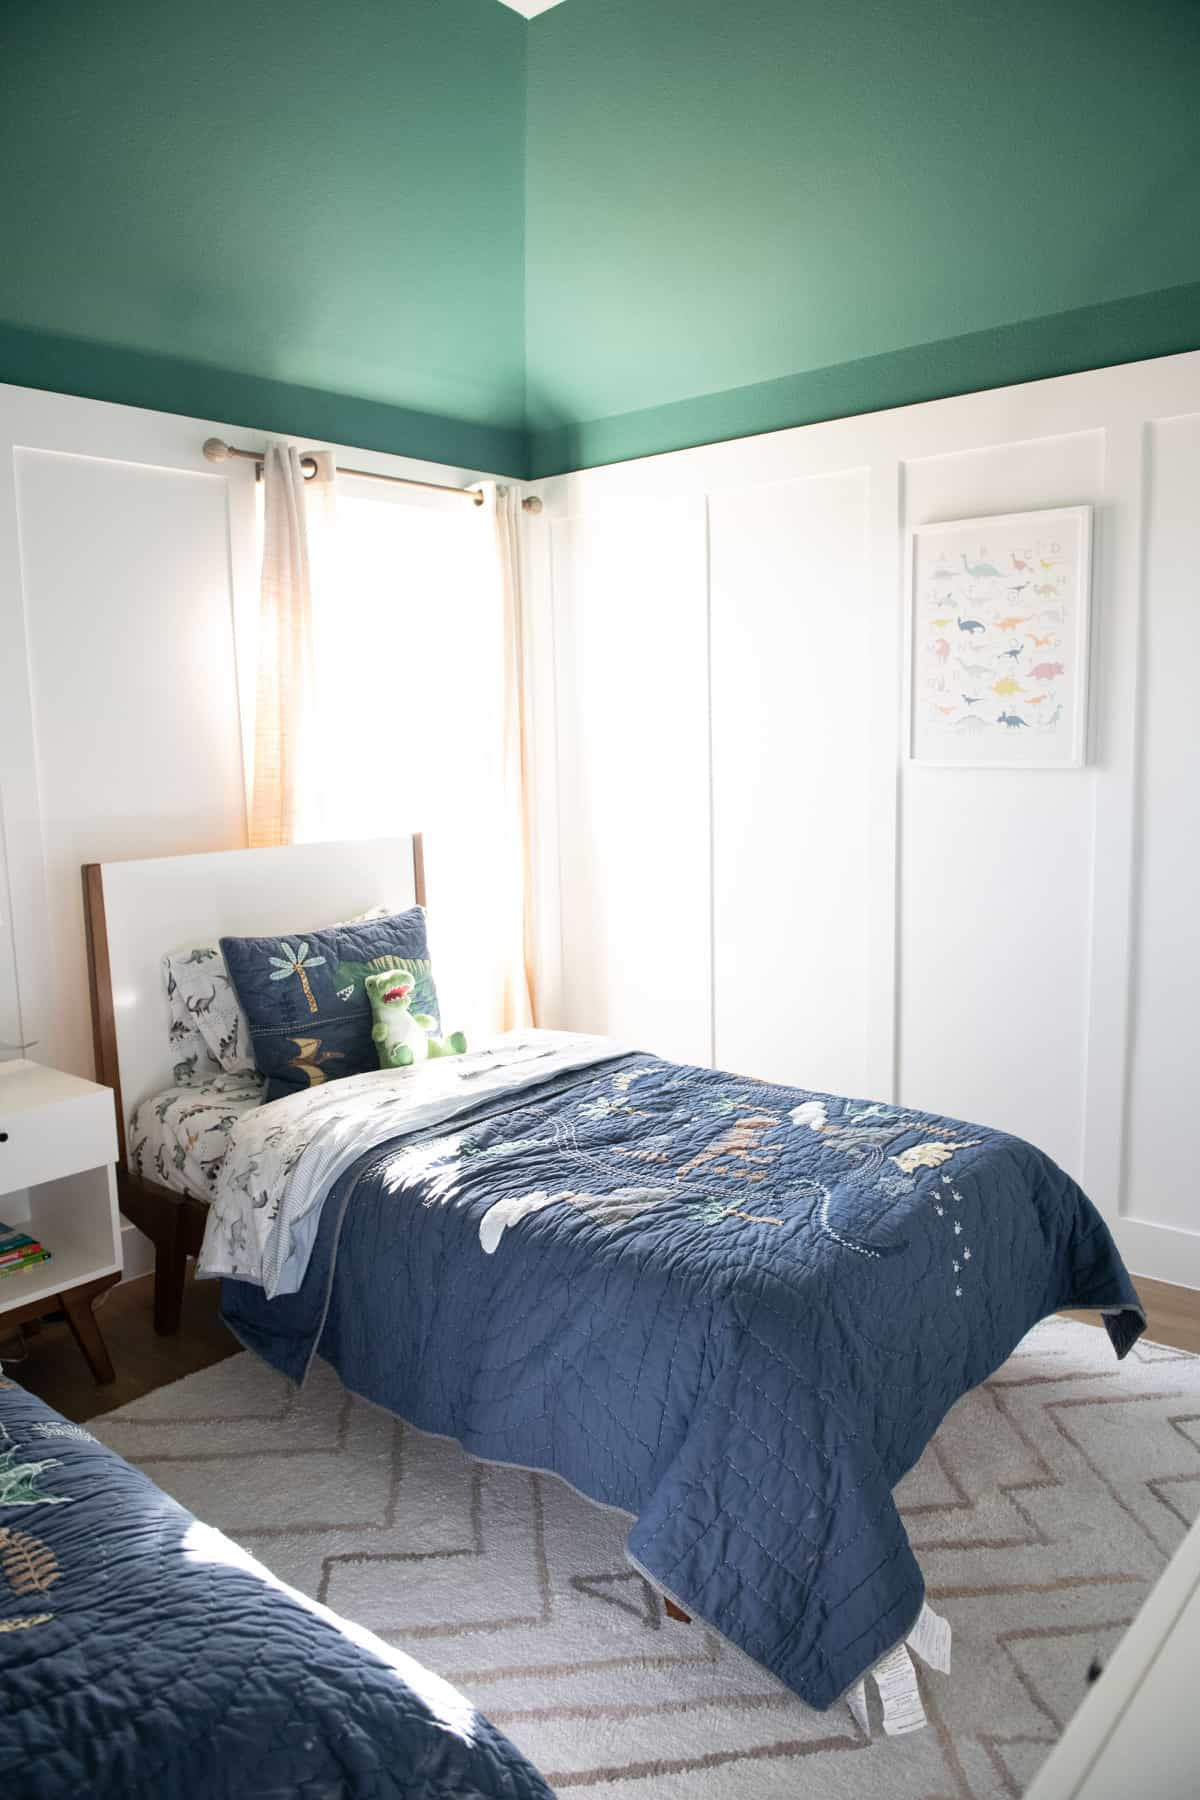 Bedroom Paint Colors by popular Dallas life and style blog, Glamorous Versatility: image of a boys' bedroom decorated with with twin beds, white headboards, dinosaur bedding, framed dinosaur art, and a white night stand with a lamp and faux plants resting on it.